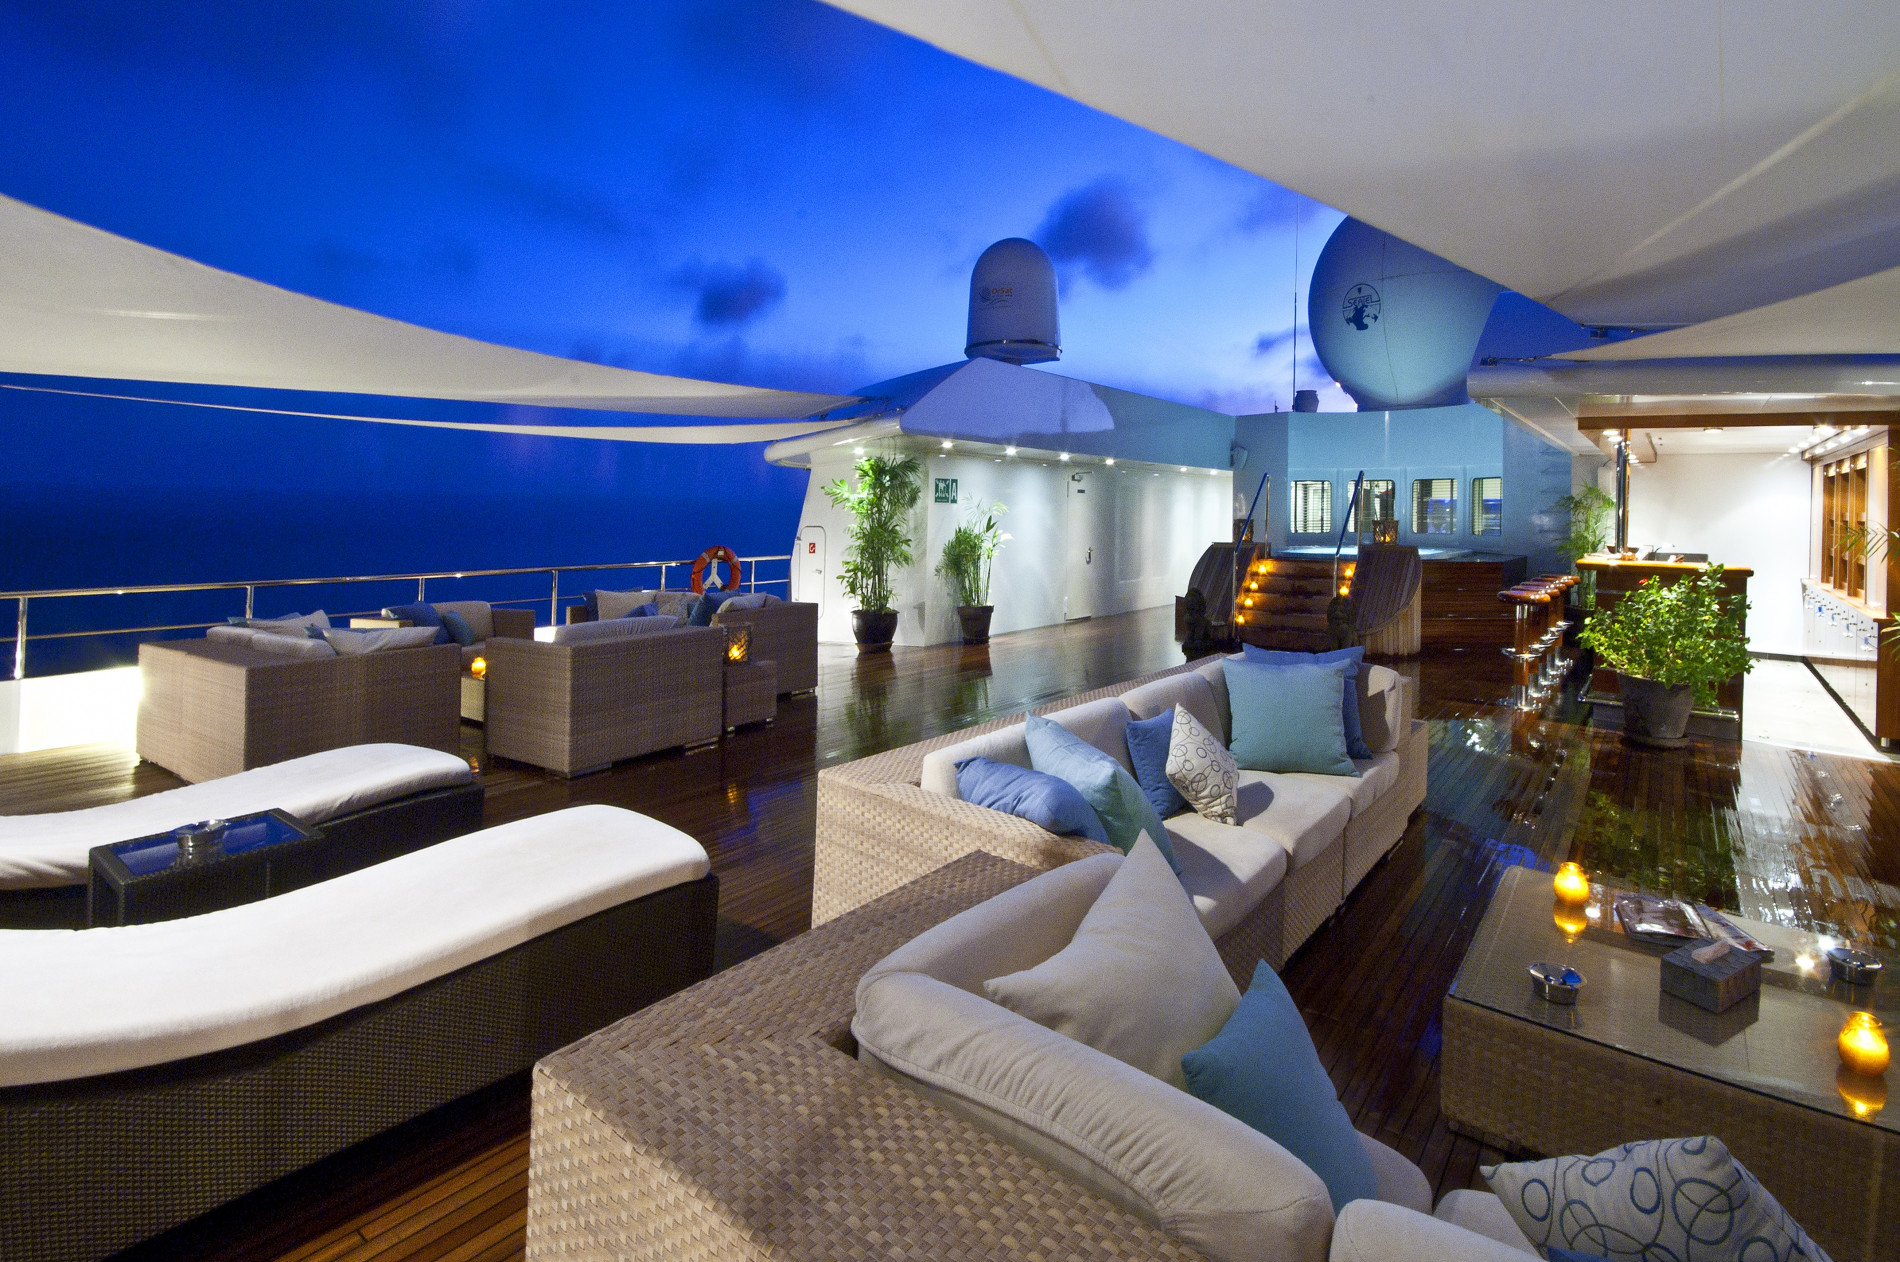 Fabulous deck areas for large groups including a Jacuzzi